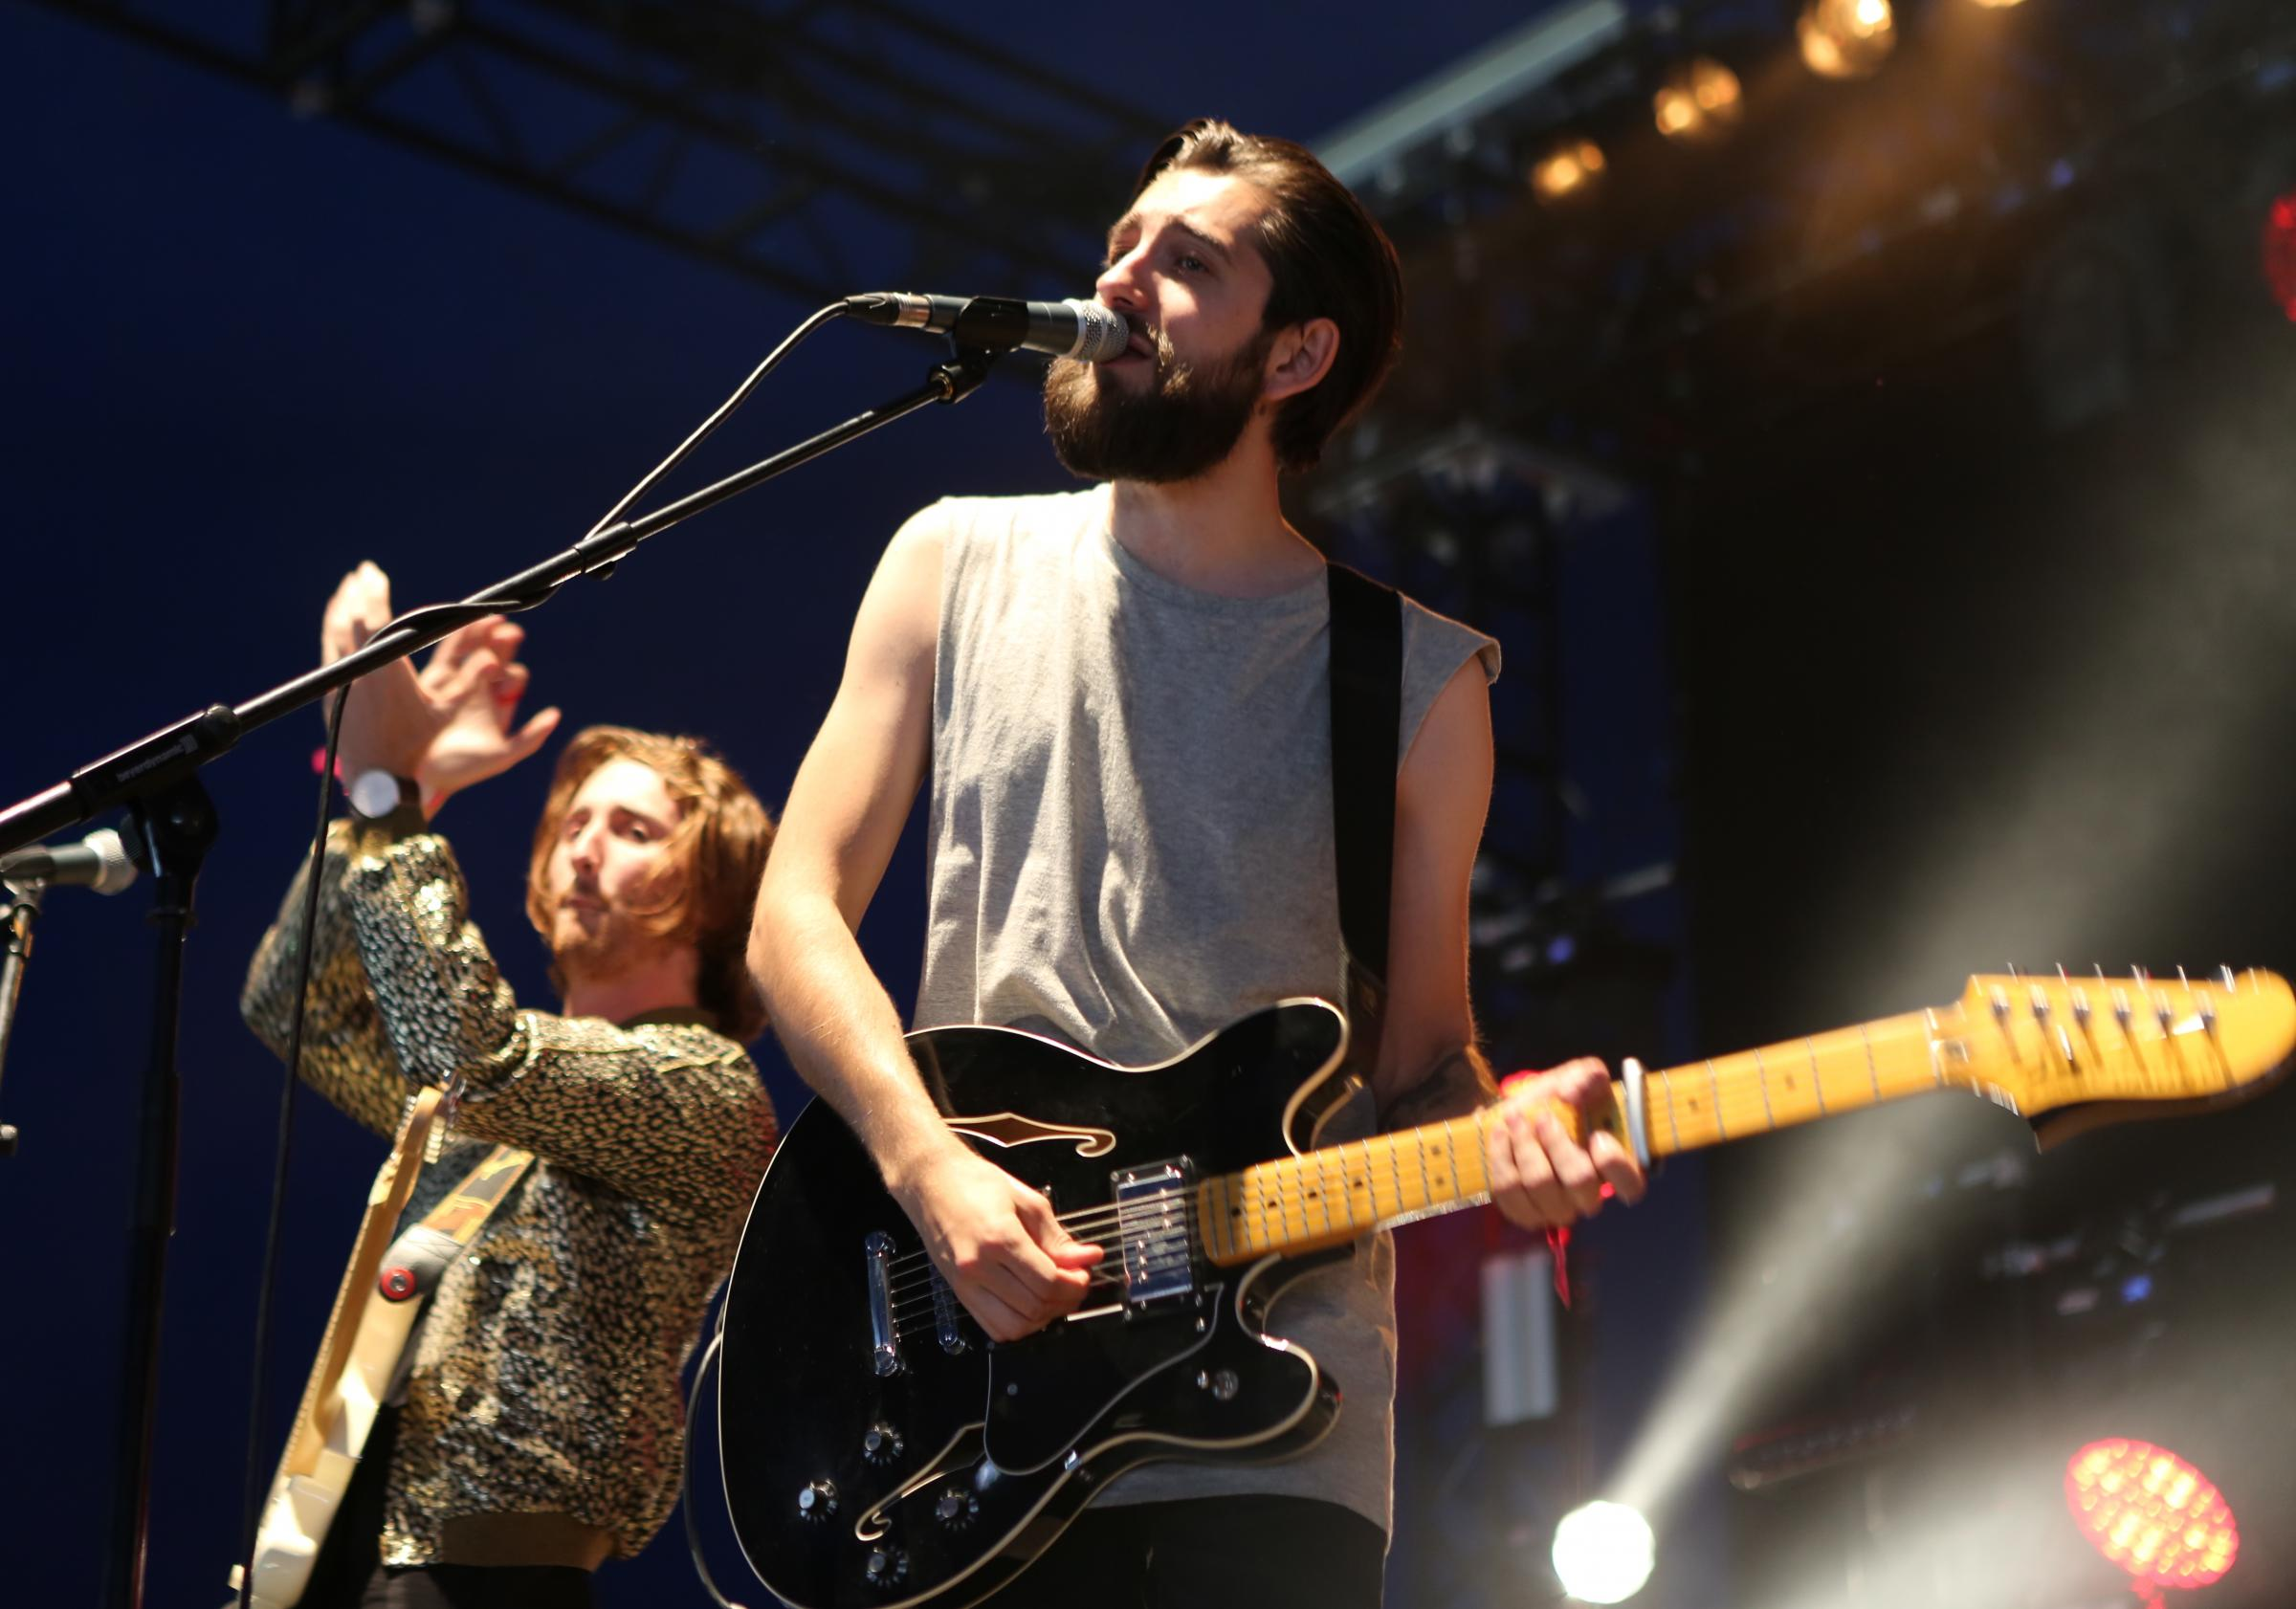 Eliza and the Bear performing at V Festival in Chelmsford